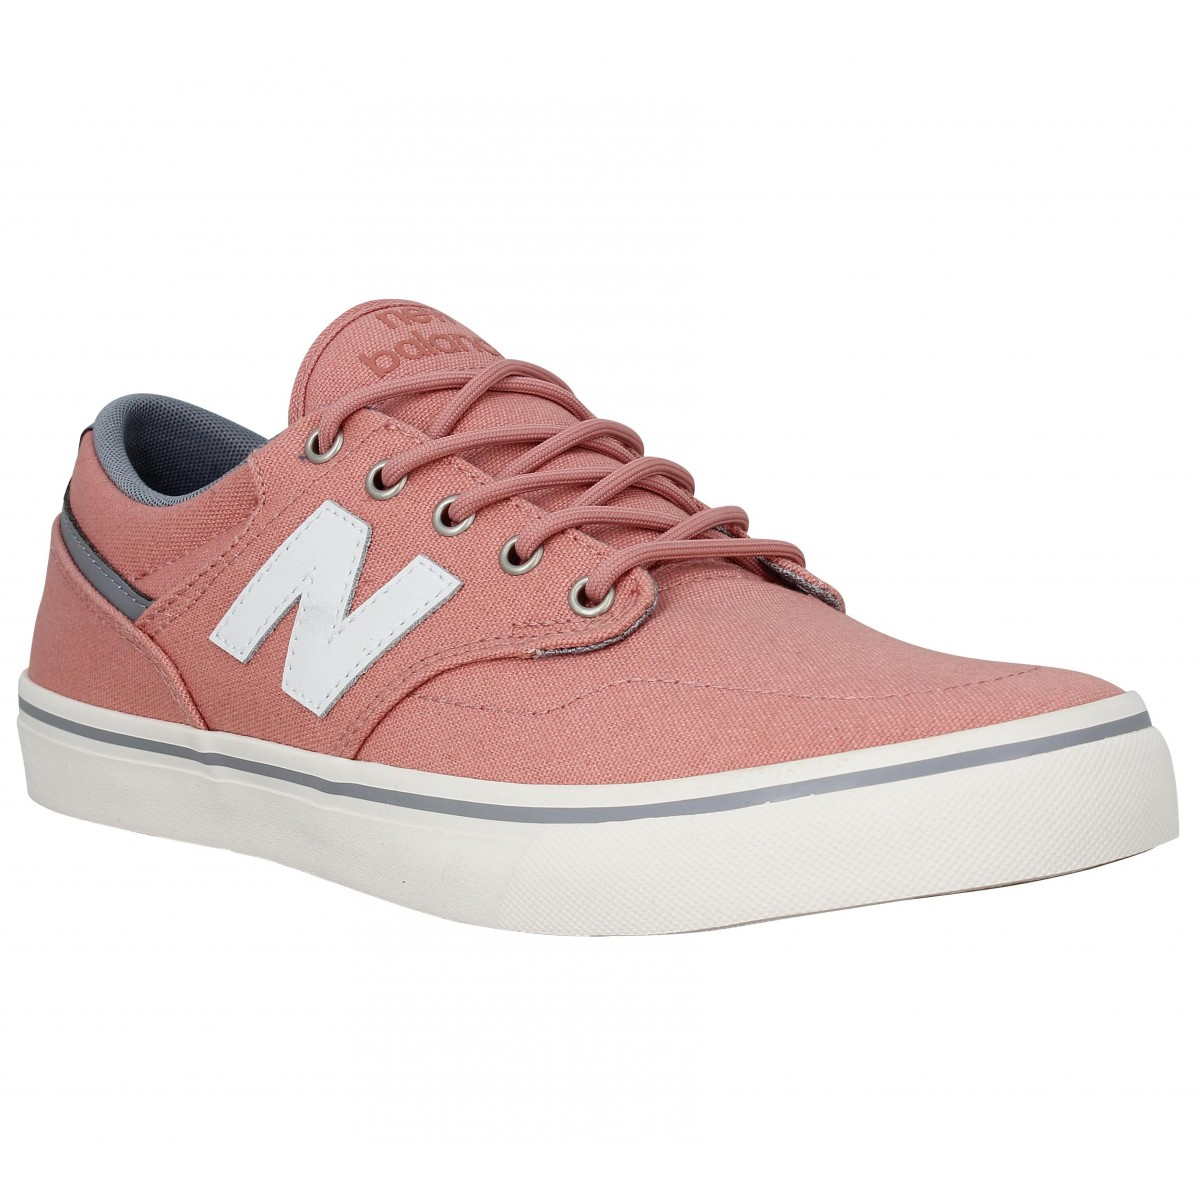 New Balance Marque 331 Toile...